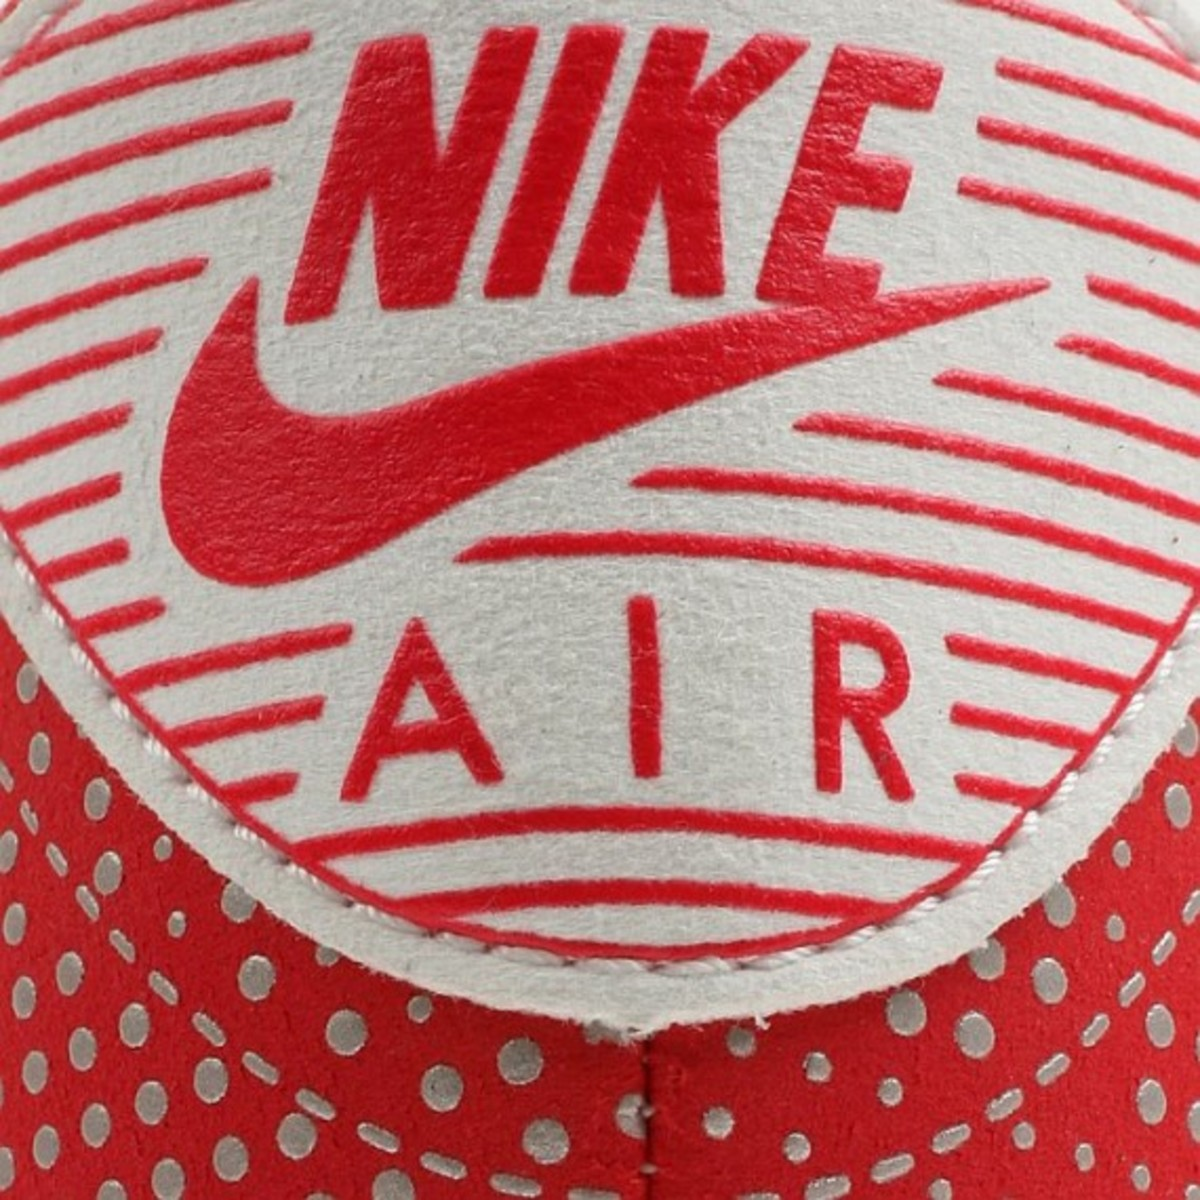 nike-air-max-90-current-2010-red-05